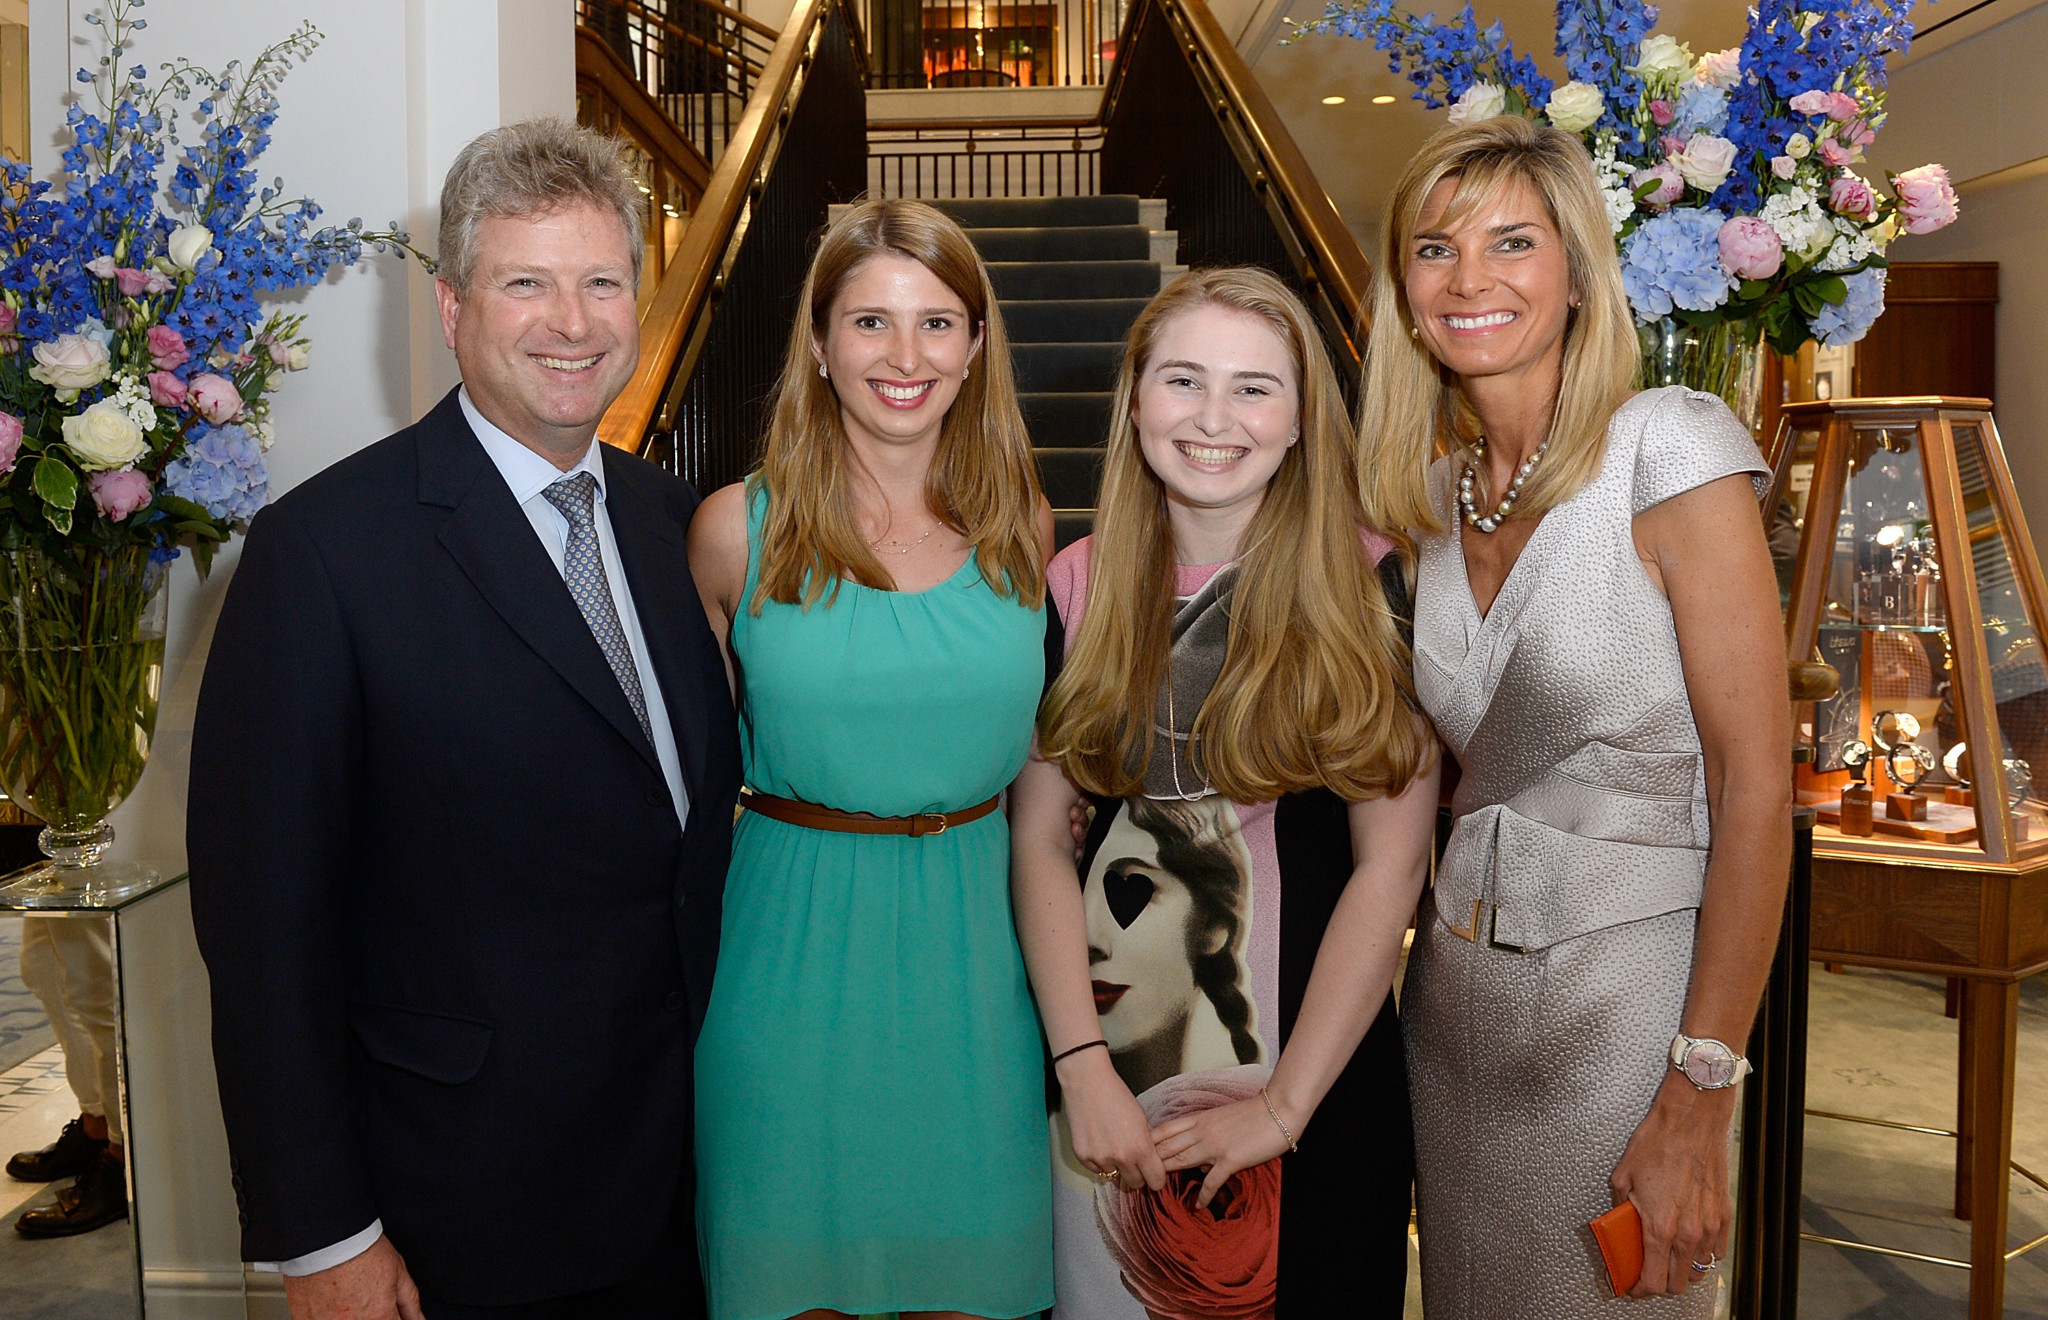 William and Lucy Asprey with daughters attending the William & Son flagship store launch in 2015.  (Photo by David M. Benett/Dave Benett / Getty Images for William & Son)